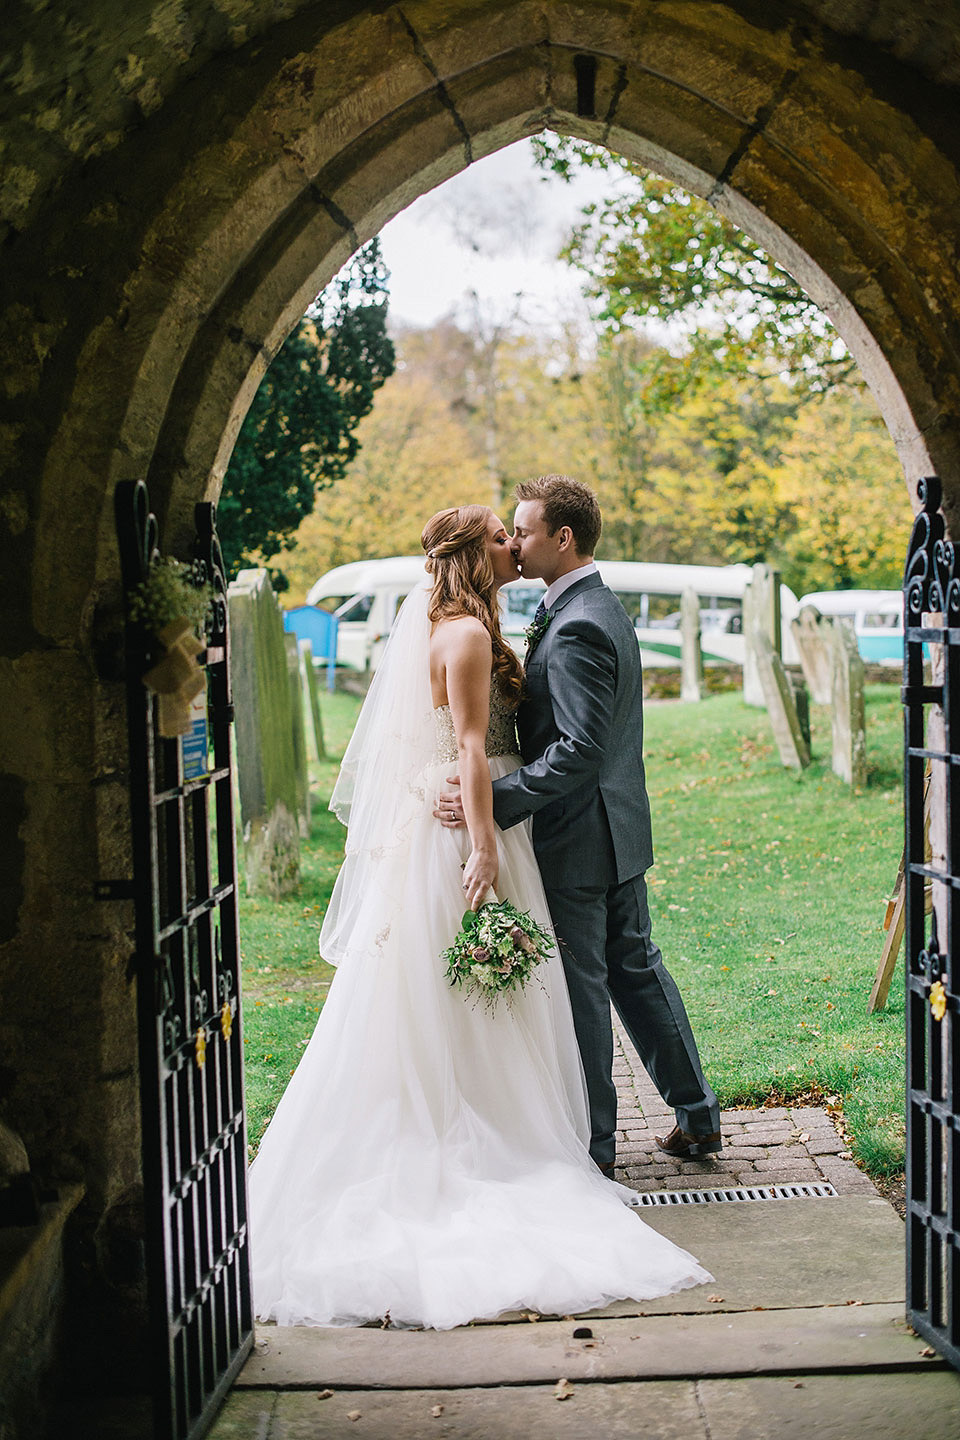 Blue Shoes and a Maggie Sottero Gown for a Rustic Inspired, Elegant Country Wedding in Yorkshire (Weddings )